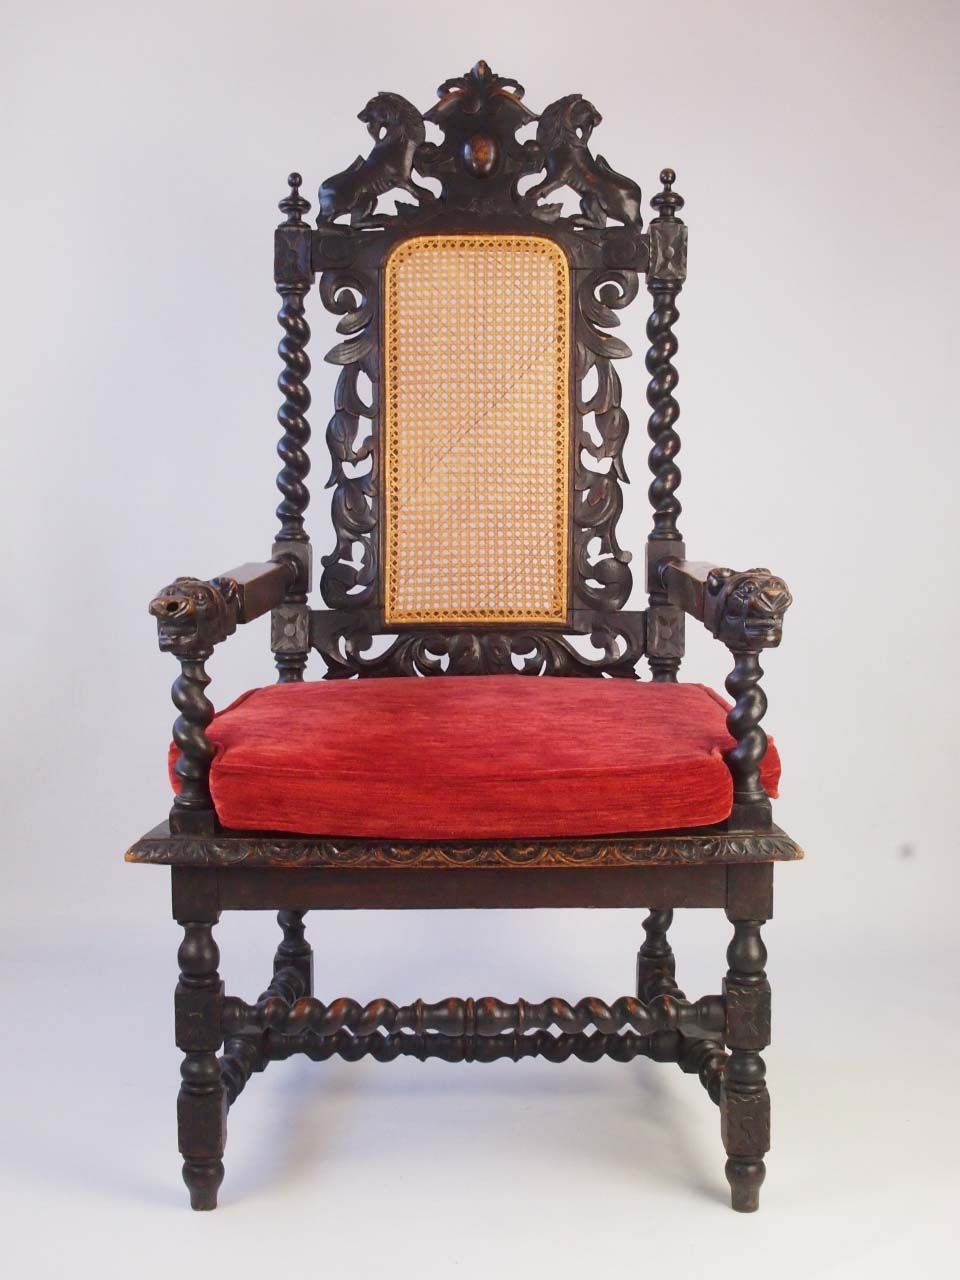 Gothic Revival Antique Furniture